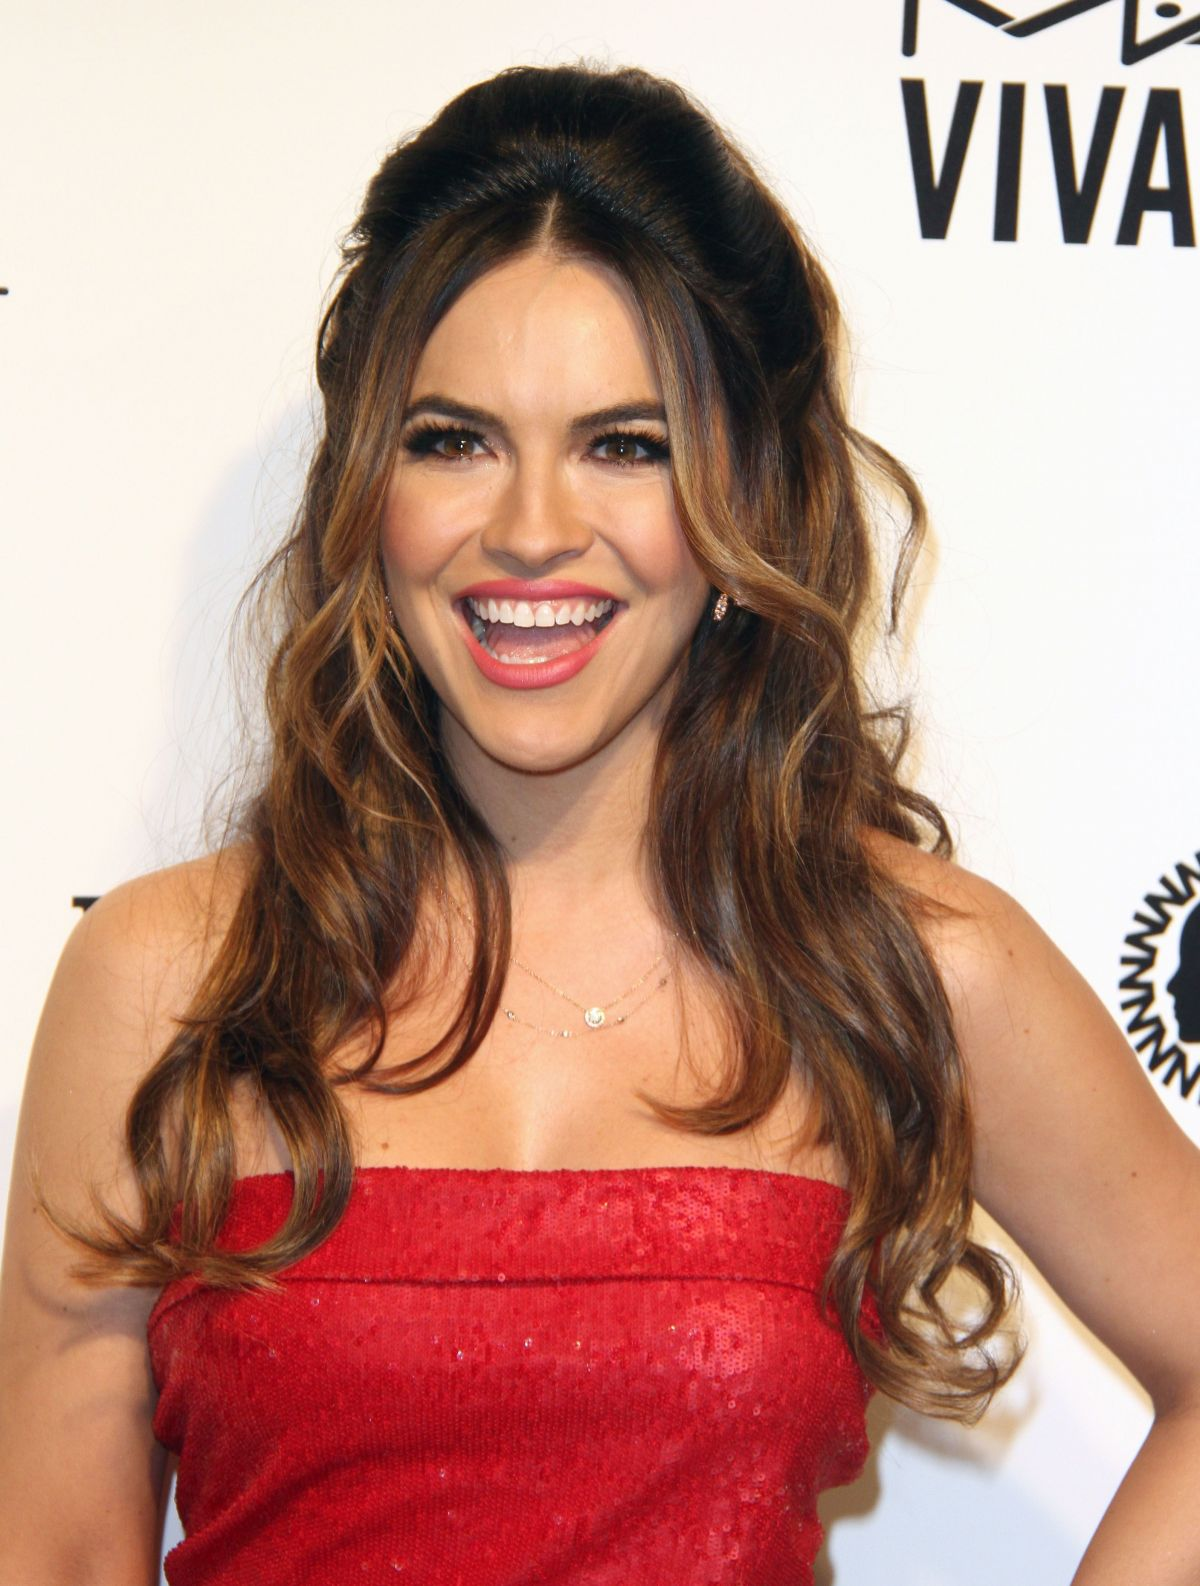 CHRISHELL STAUSE at 25th Annual Elton John Aids Foundation's Oscar Viewing Party in Hollywood 02/26/2017